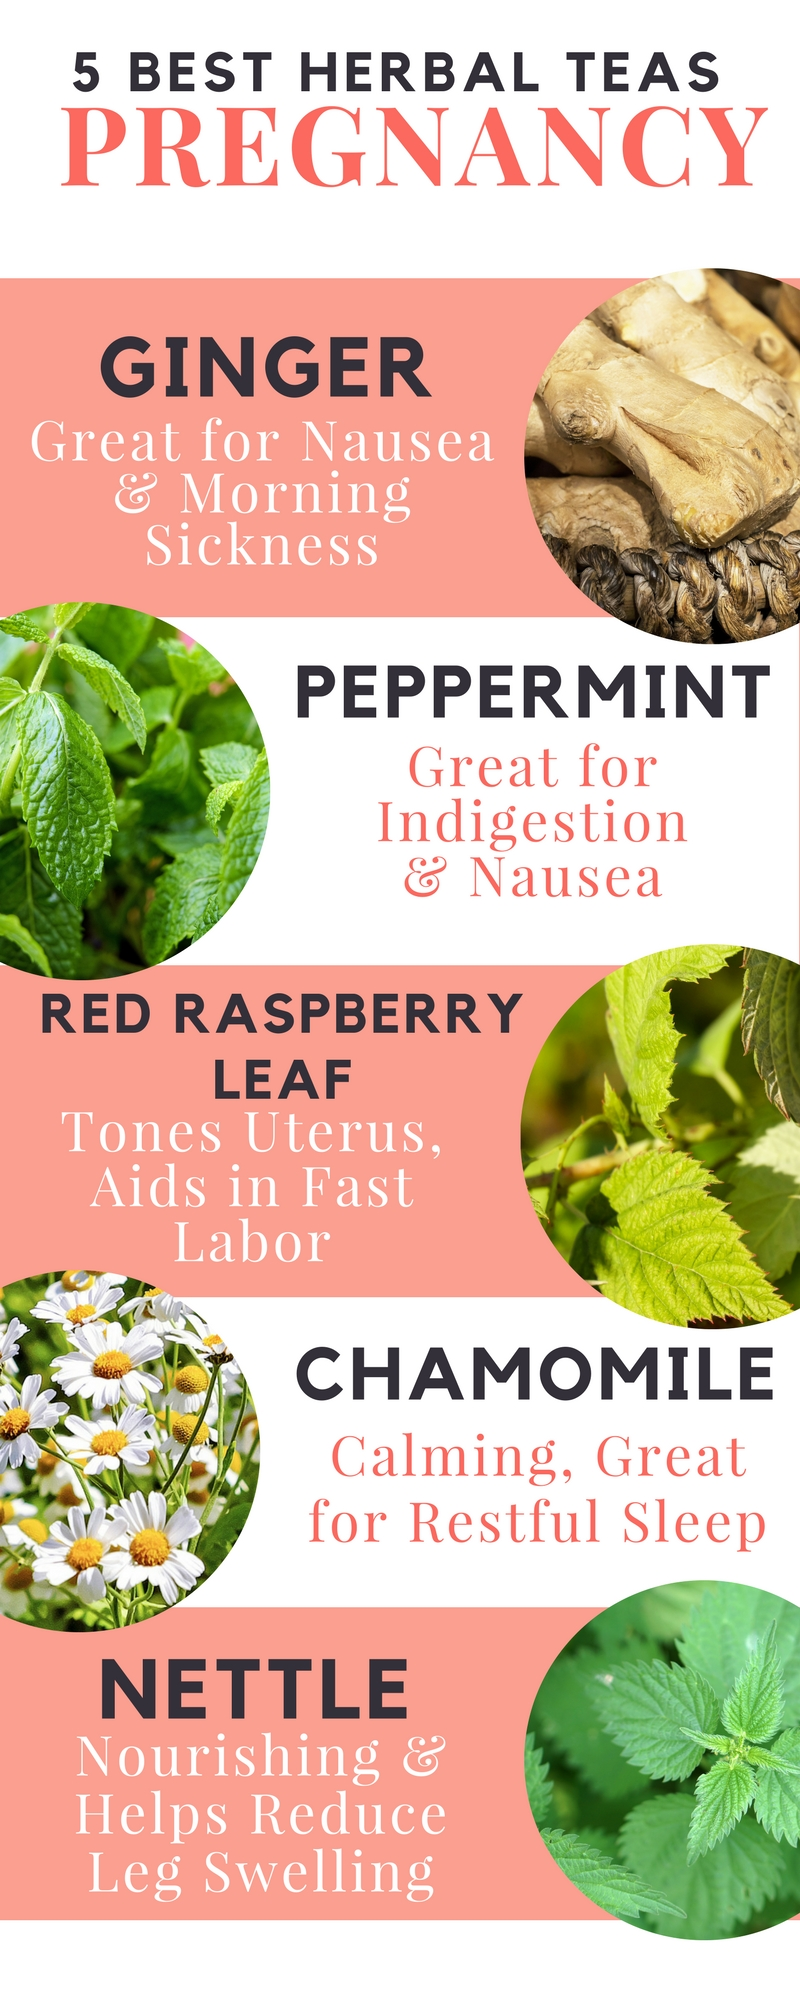 The best herbal teas for pregnancy. Helps with morning sickness, heartburn and fast labor!